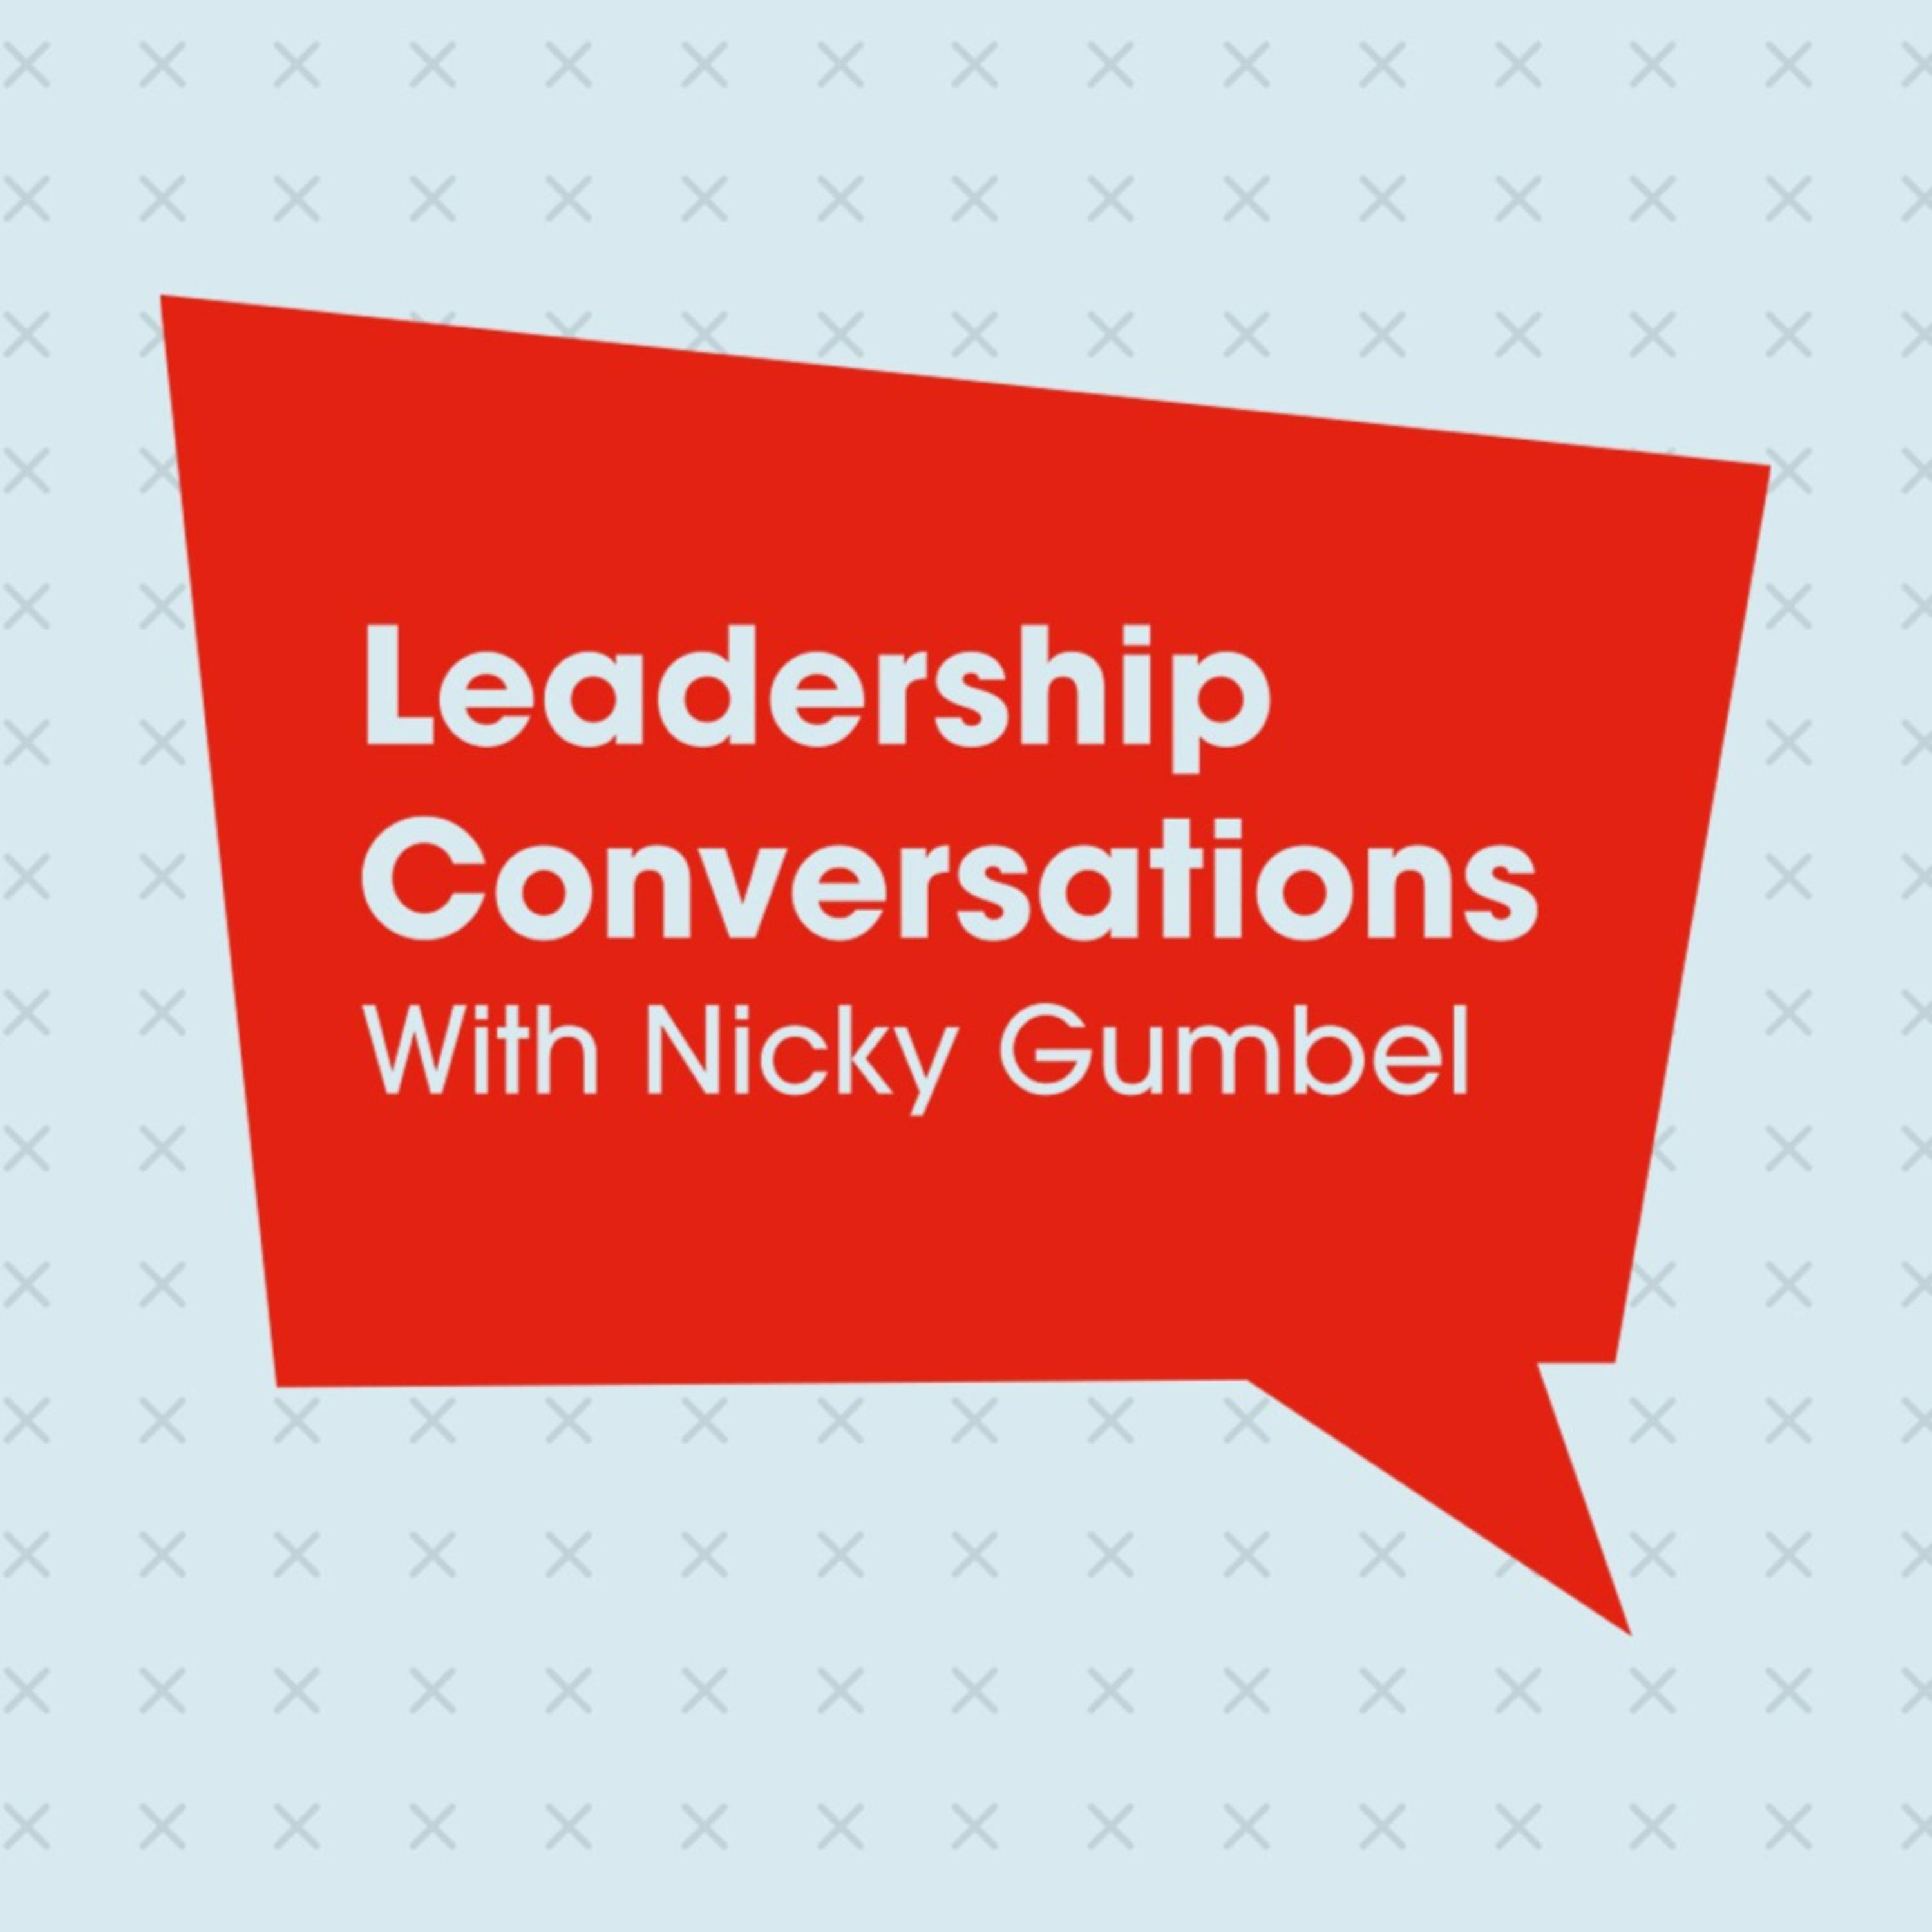 Leadership Conversations With Nicky Gumbel